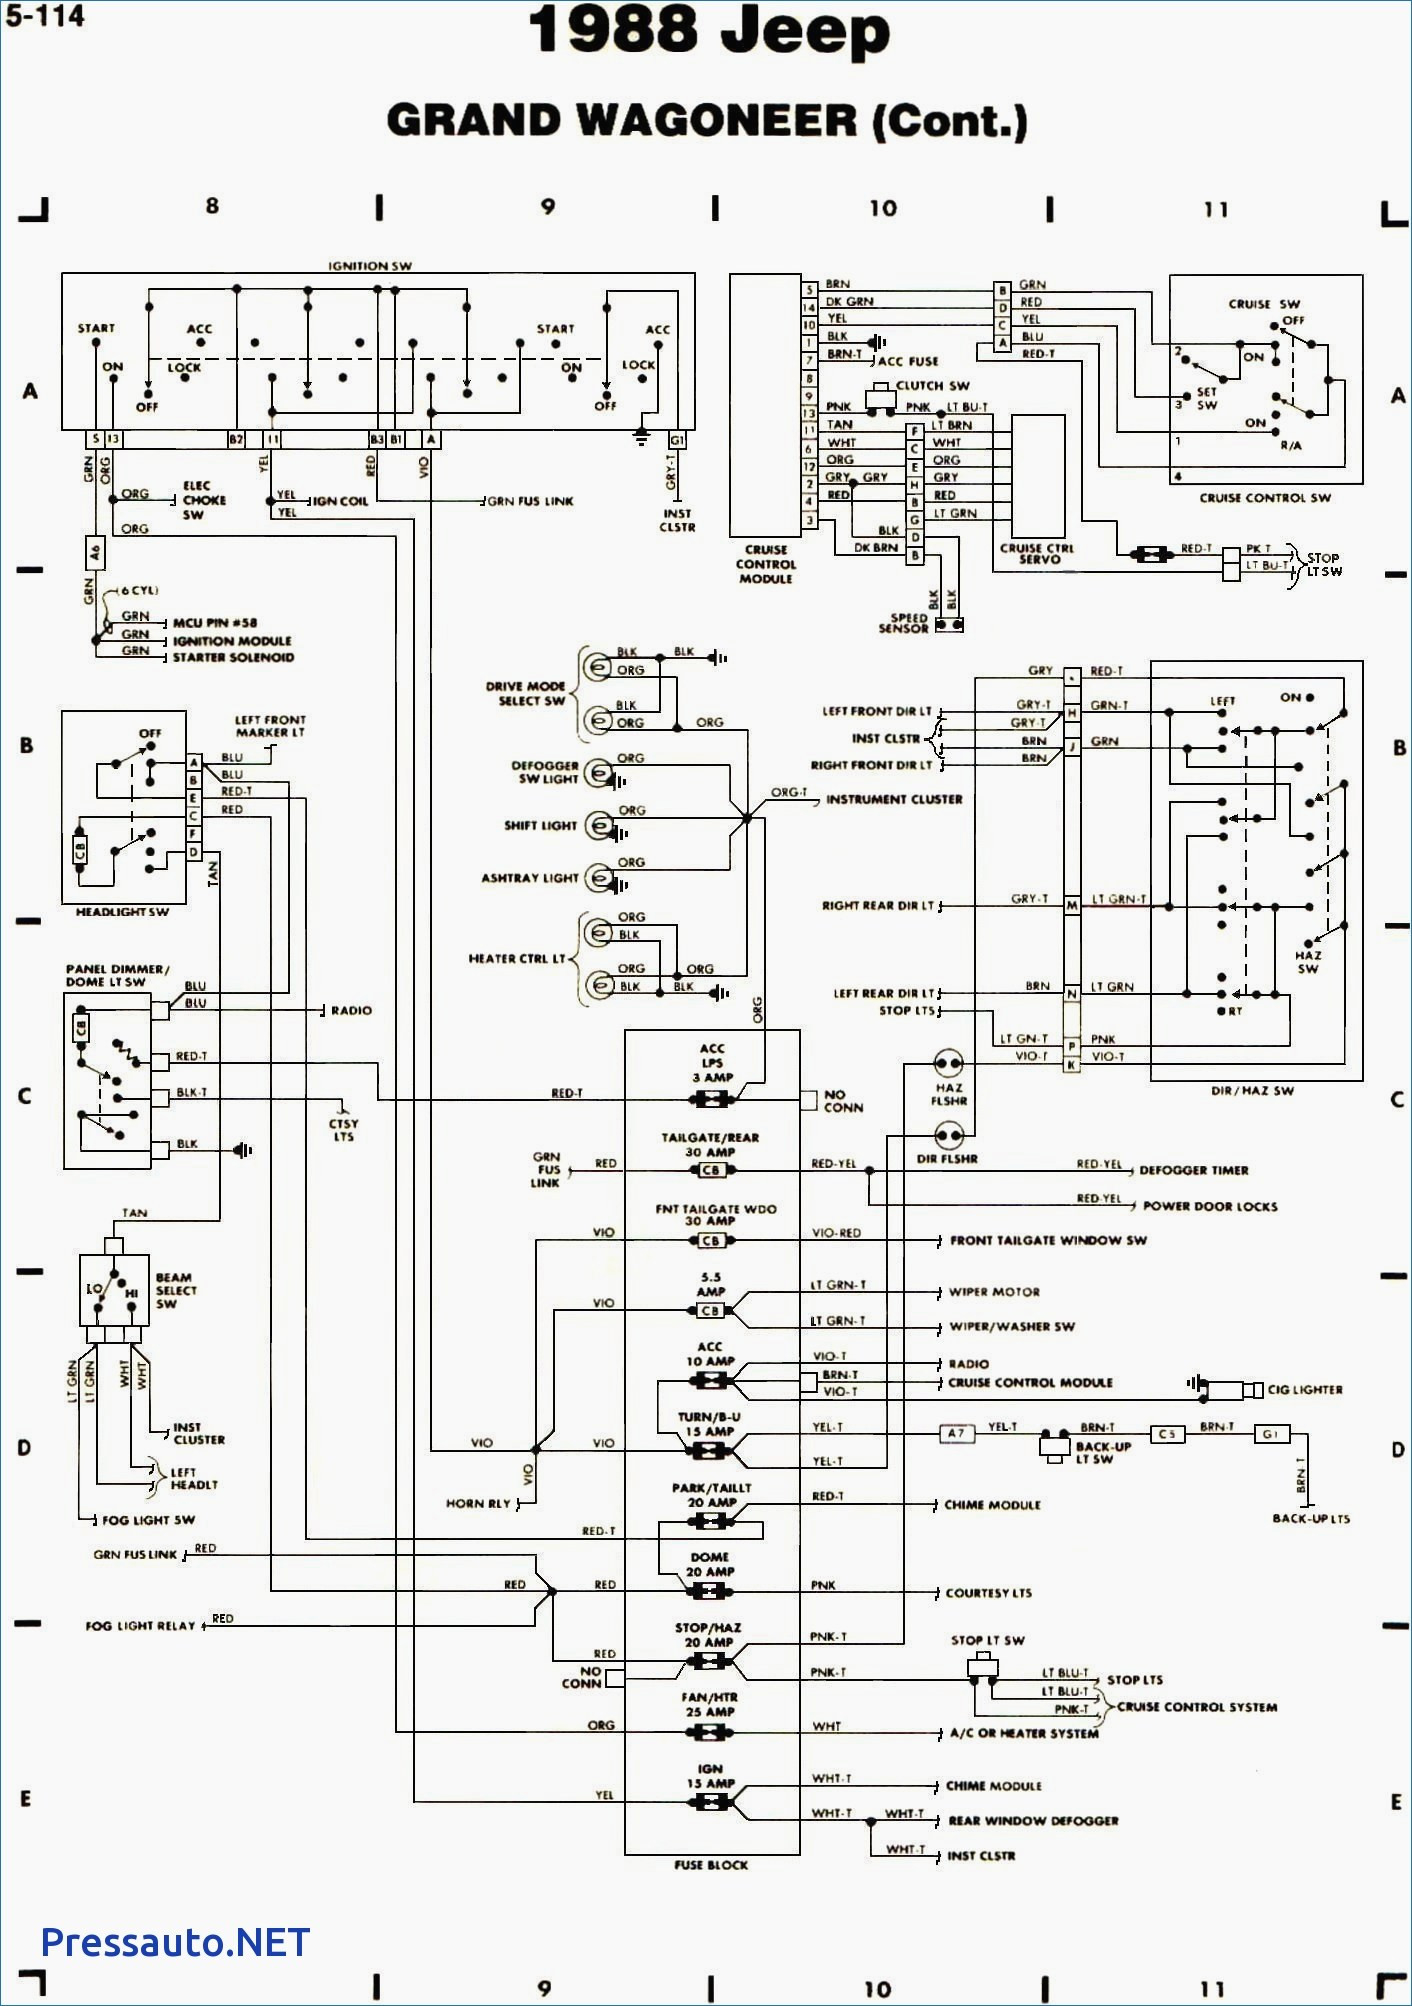 Freightliner M Wiring Diagram Freightliner Fl Fuse Box Diagram Wire Center U Rh Freightliner M F on 2006 freightliner columbia fuse box diagram